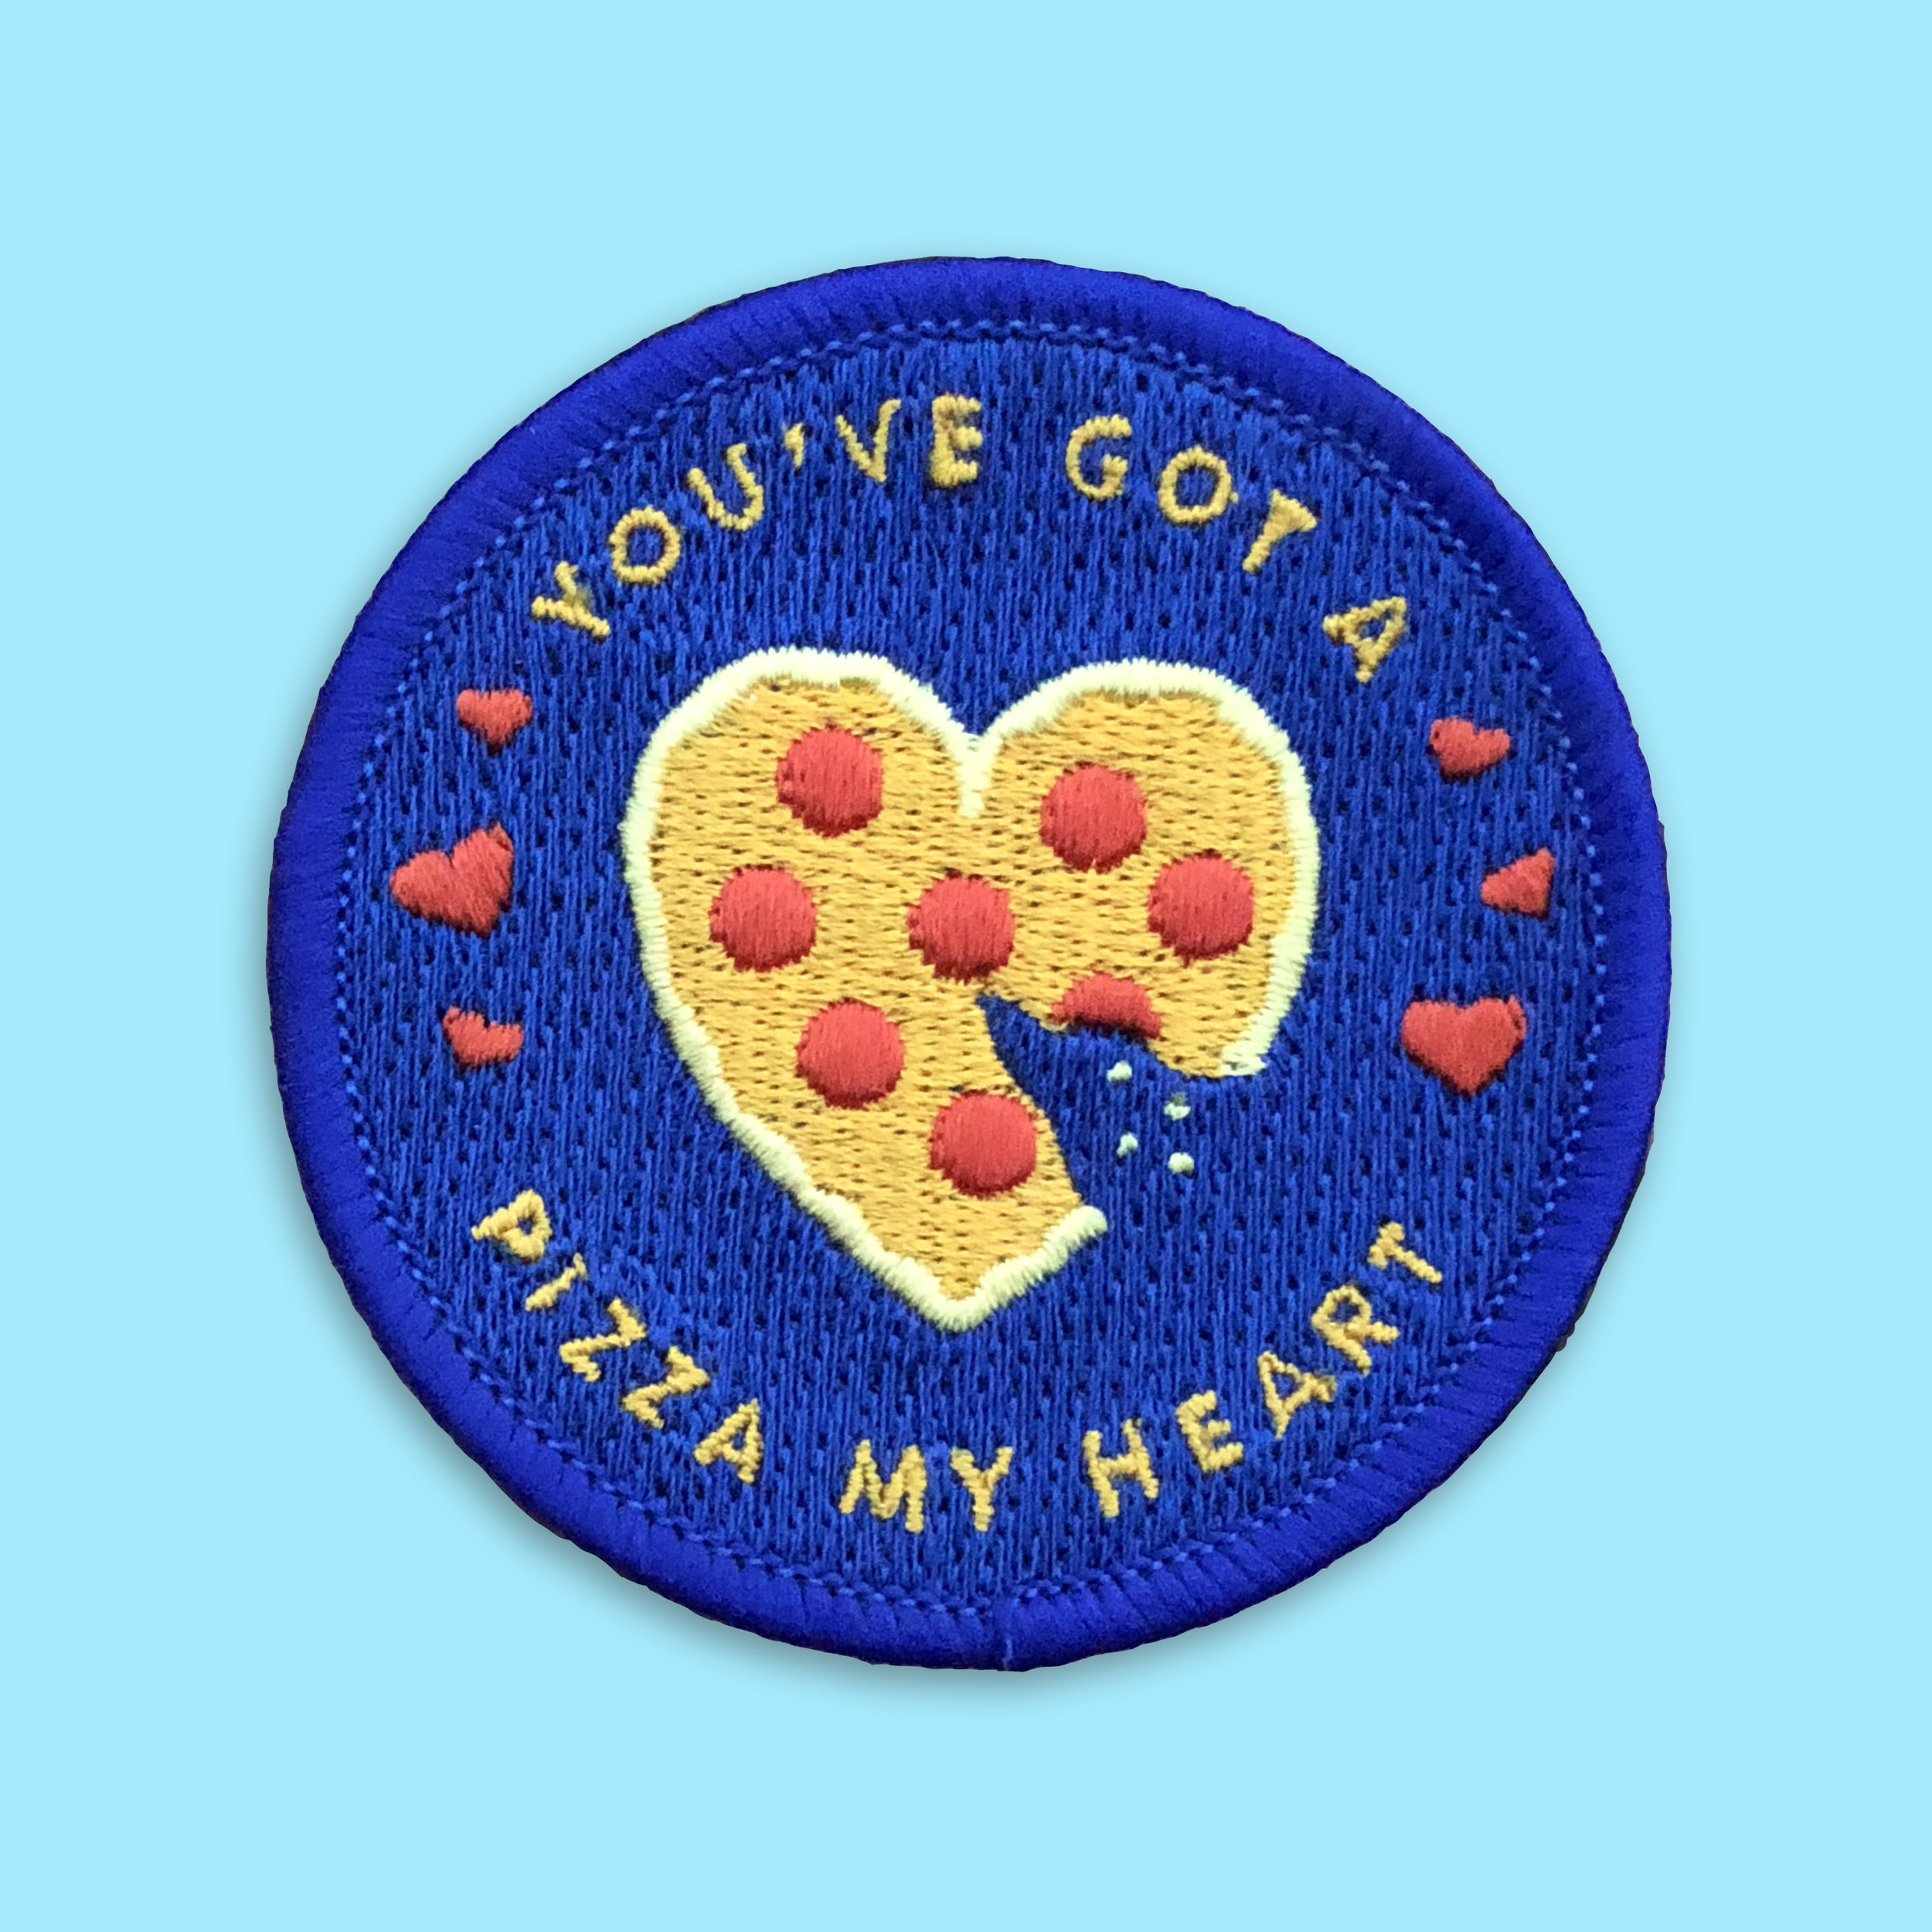 Pretty-Useful-Co-Pizza-My-Heart-Patch - Clare Freeman.jpg